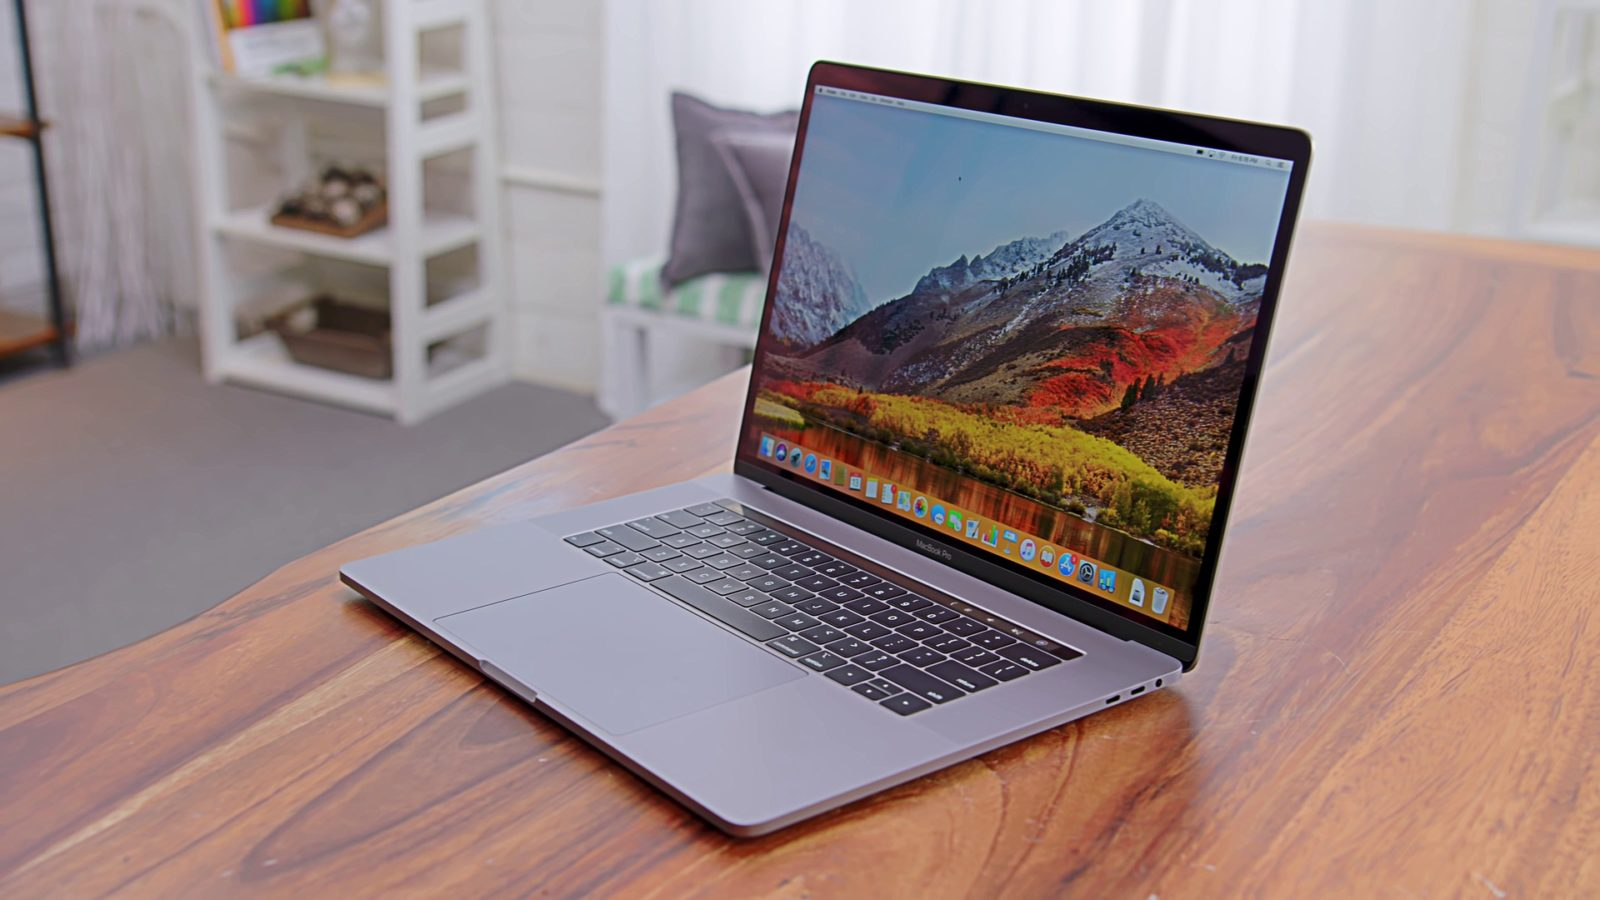 Are Macs Good for Video Editing?